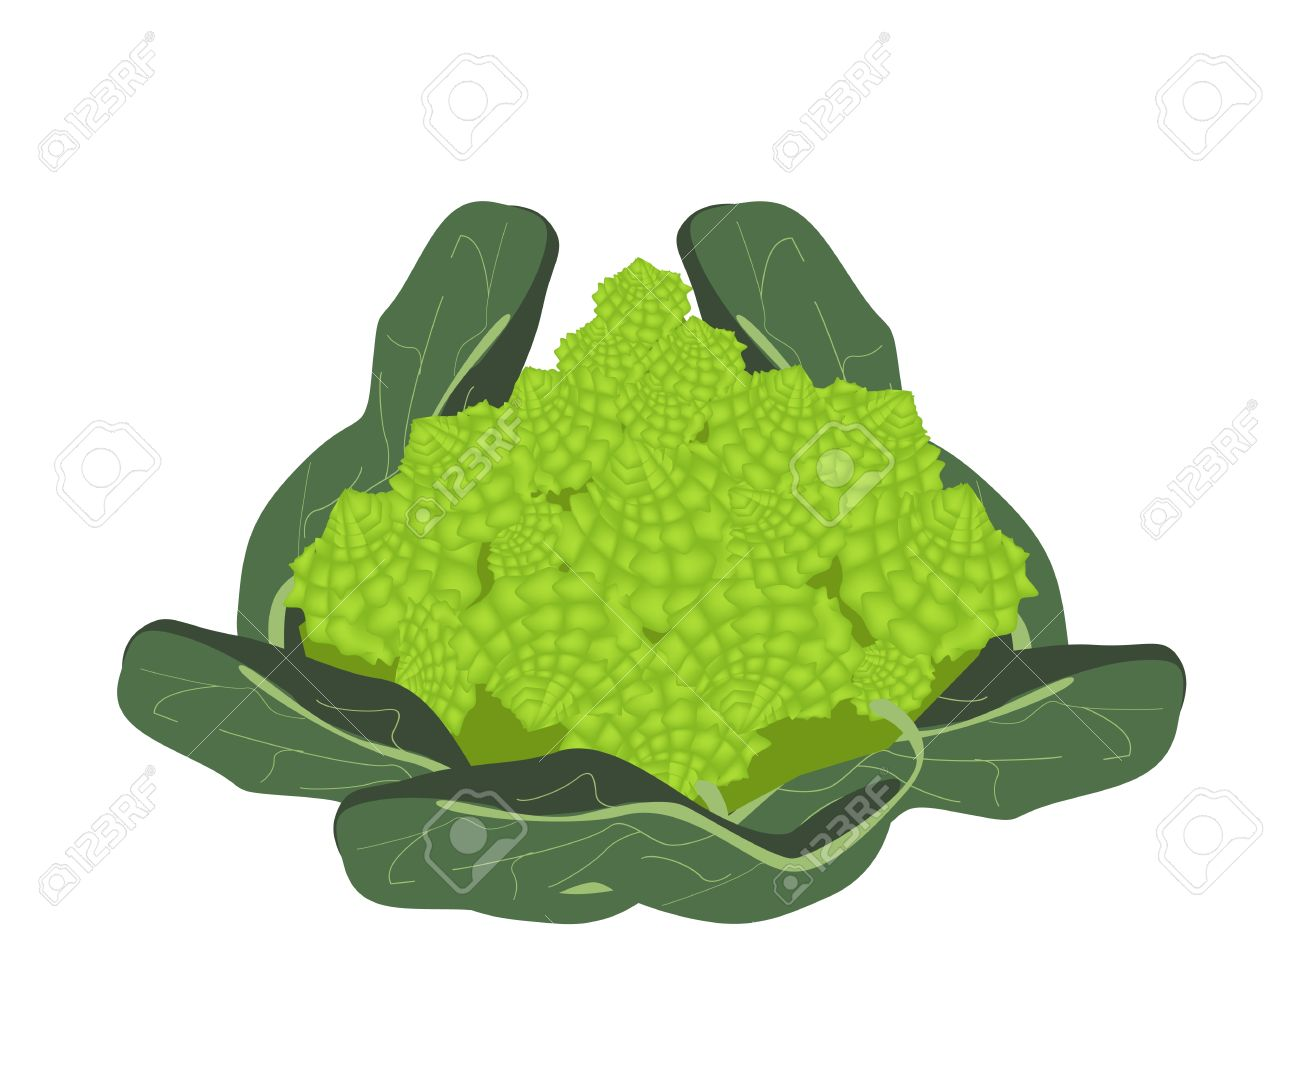 Vegetable, Vector Illustration Of Delicious Fresh Green Romanesco.